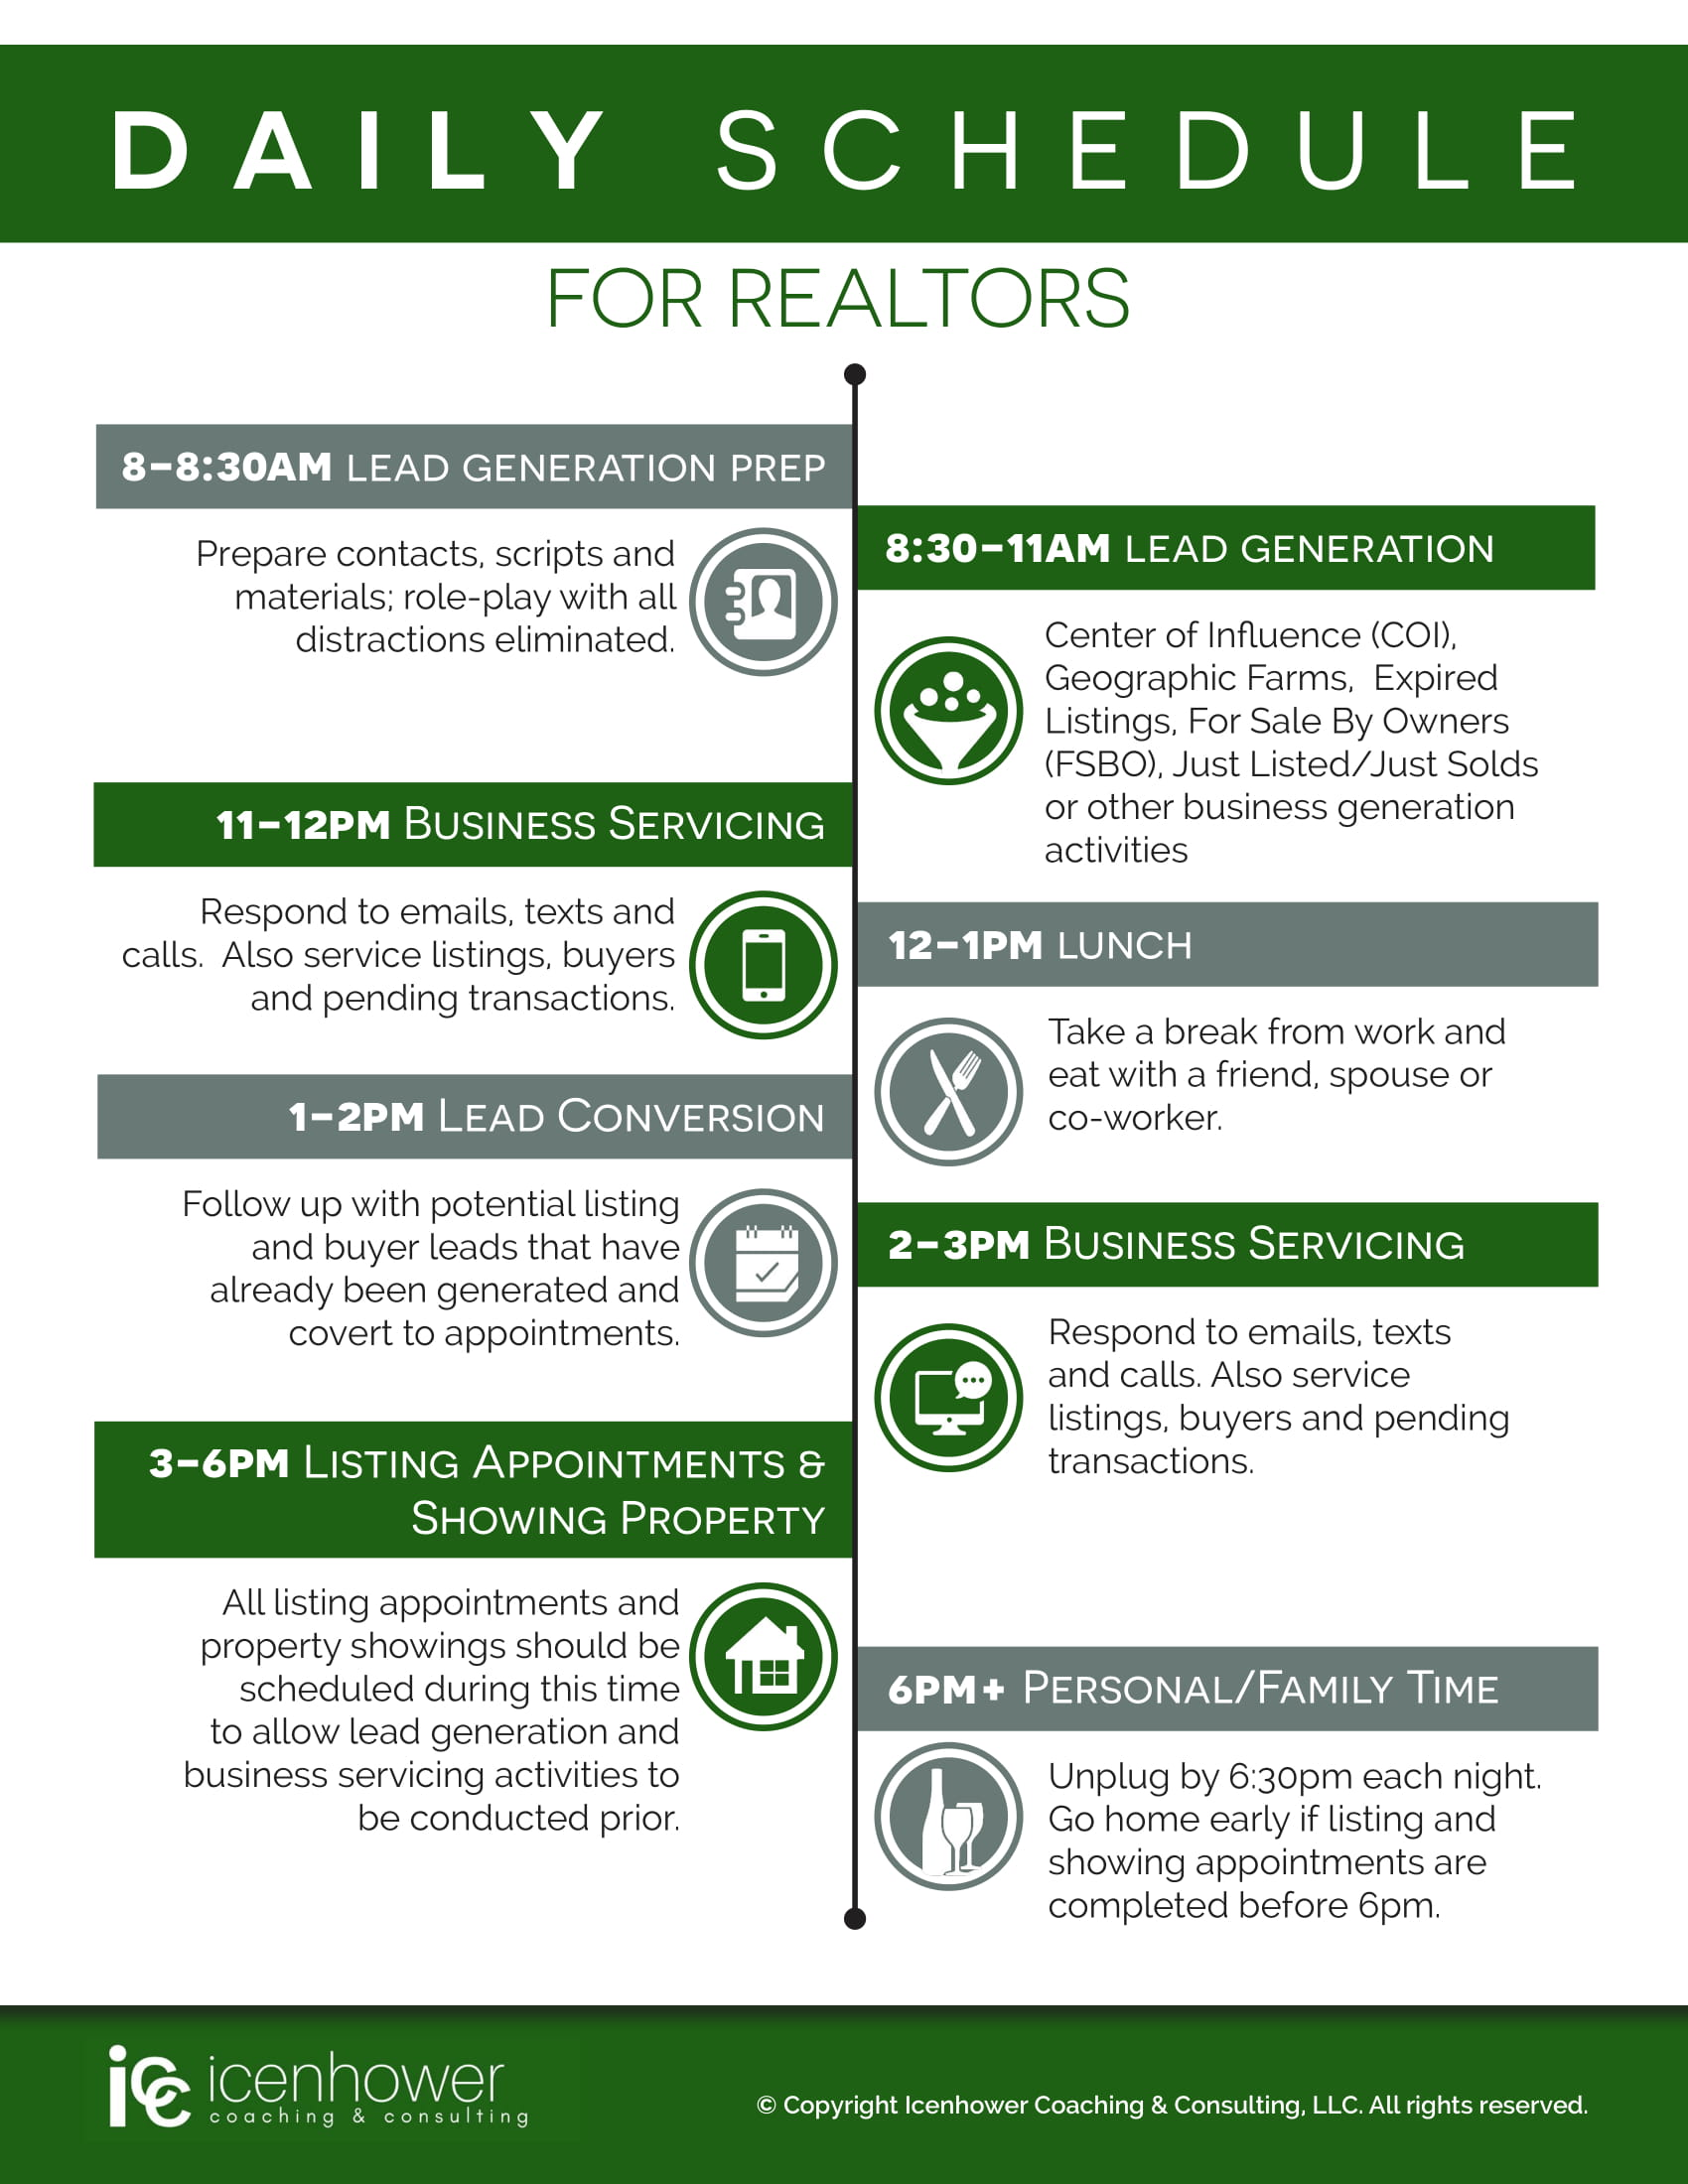 Top Realtor Daily Schedule